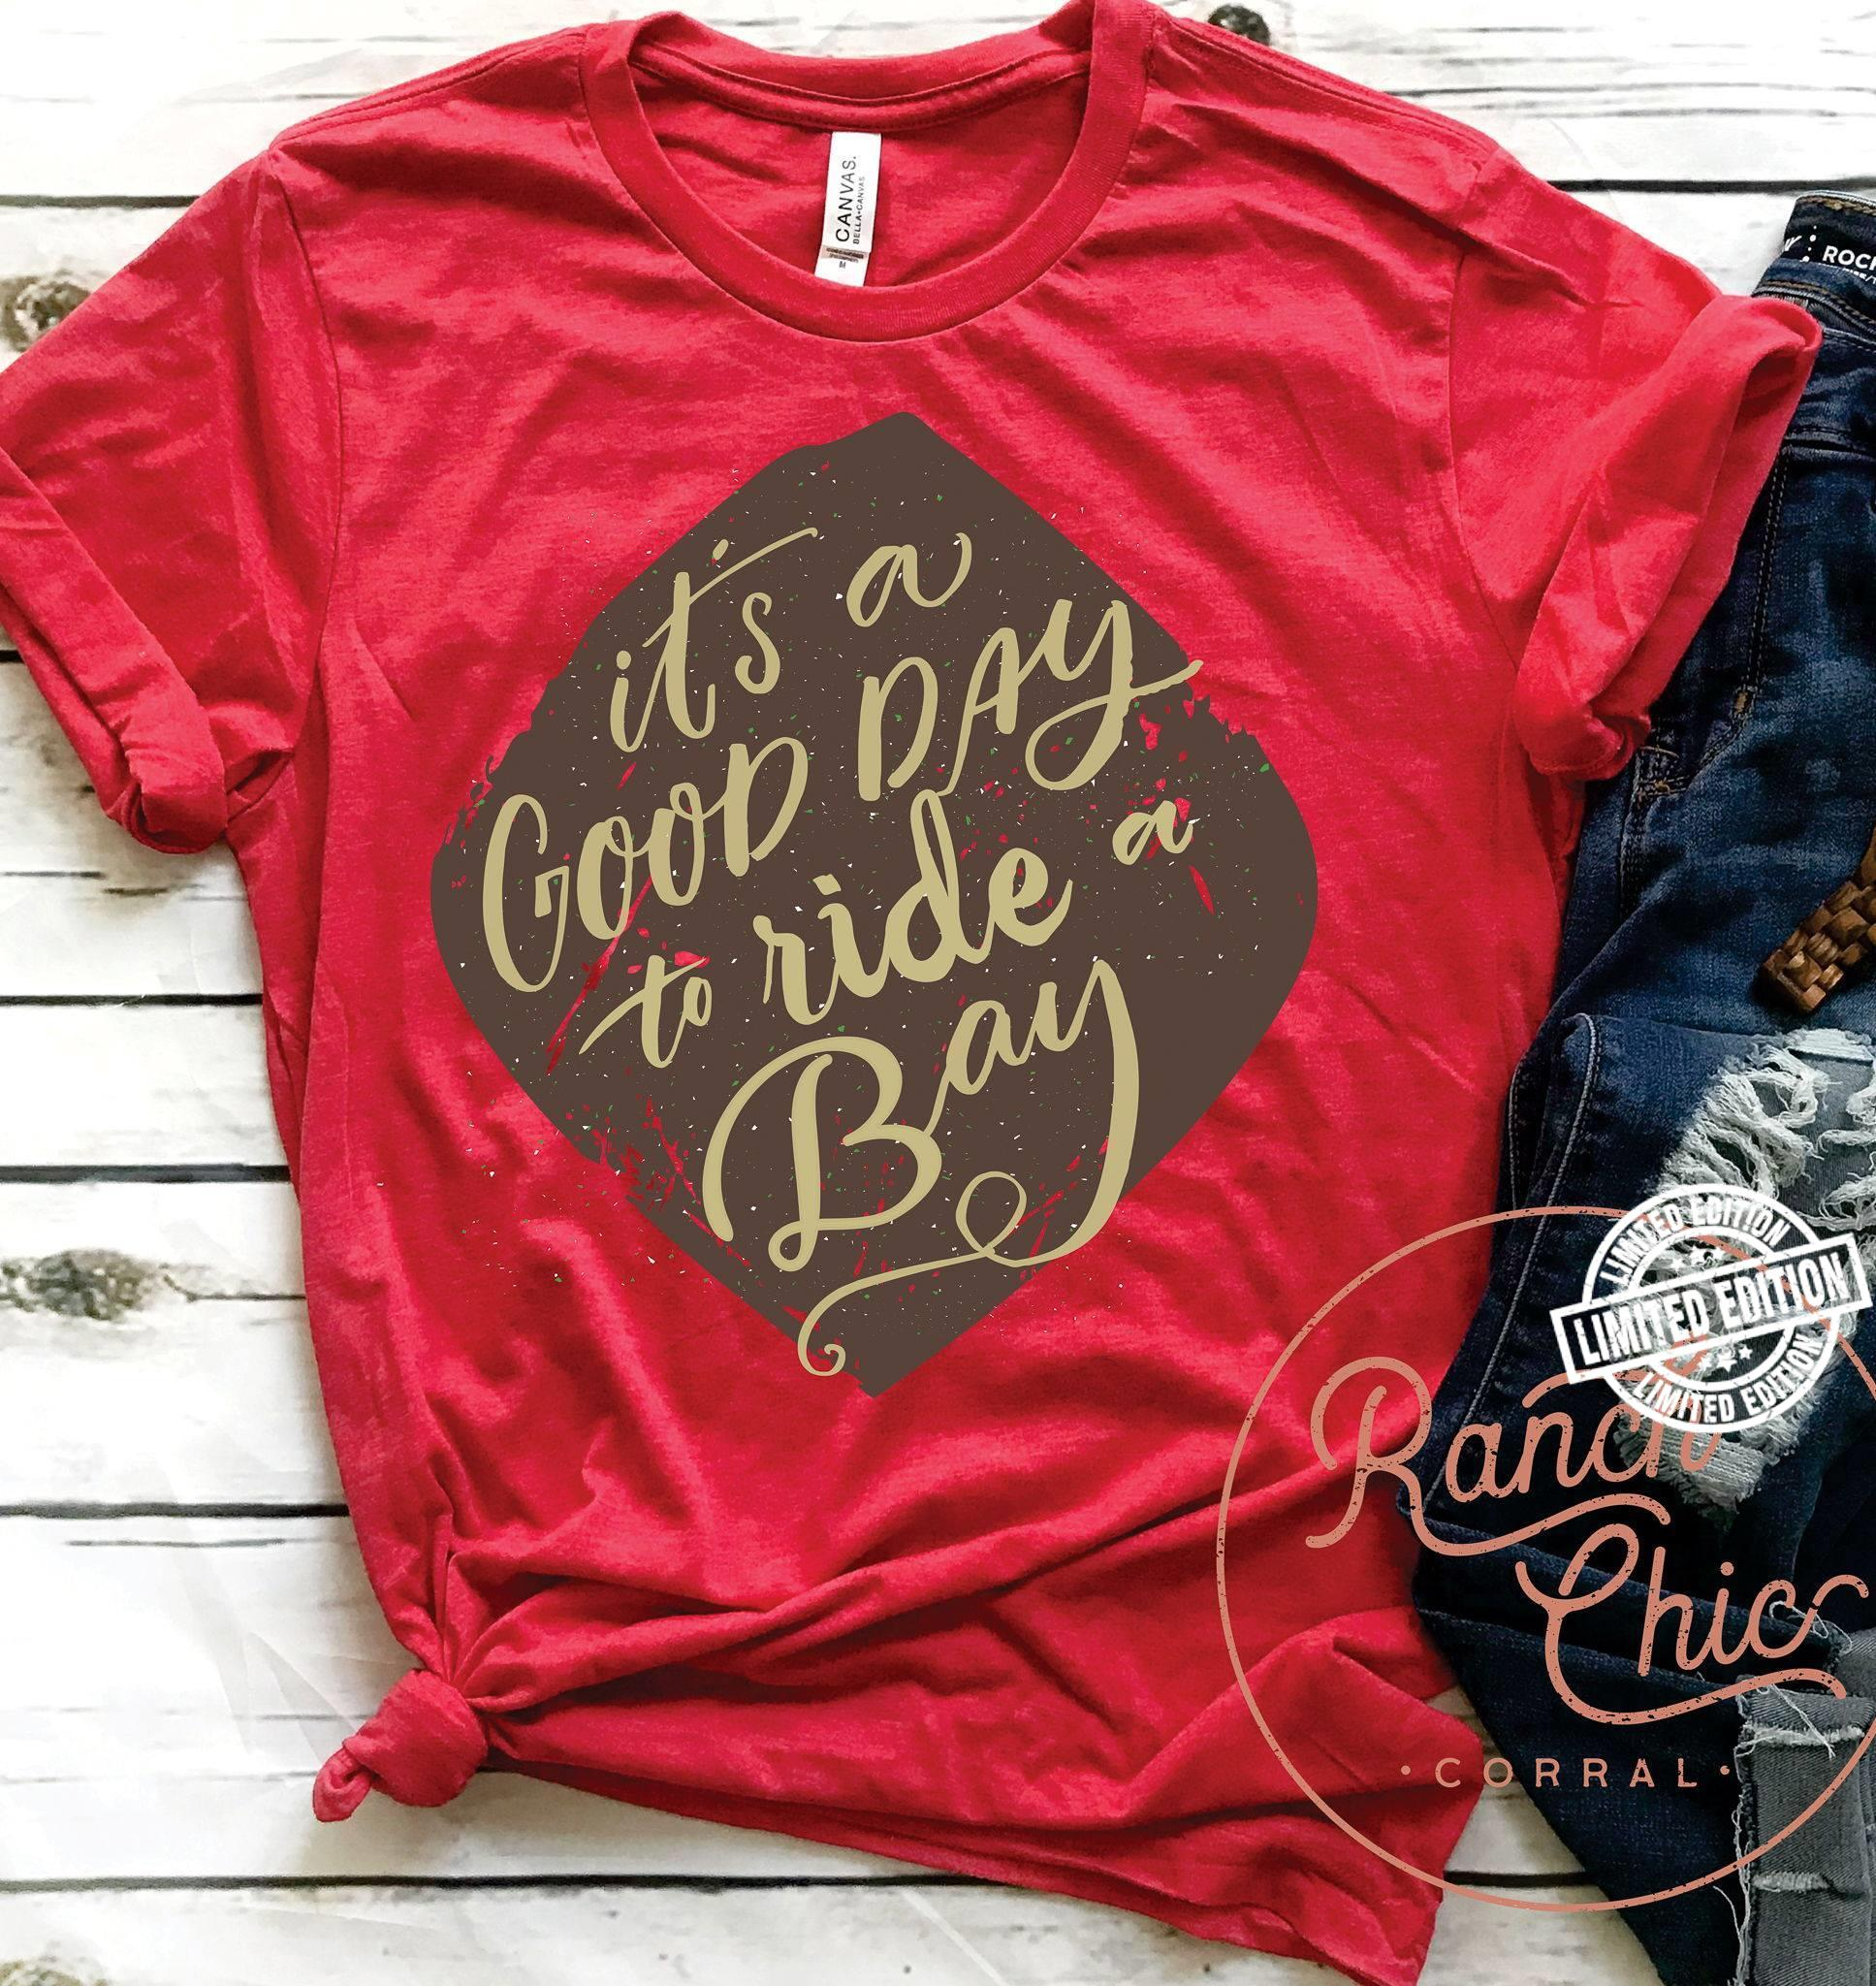 It's a good day to ride a bay shirt